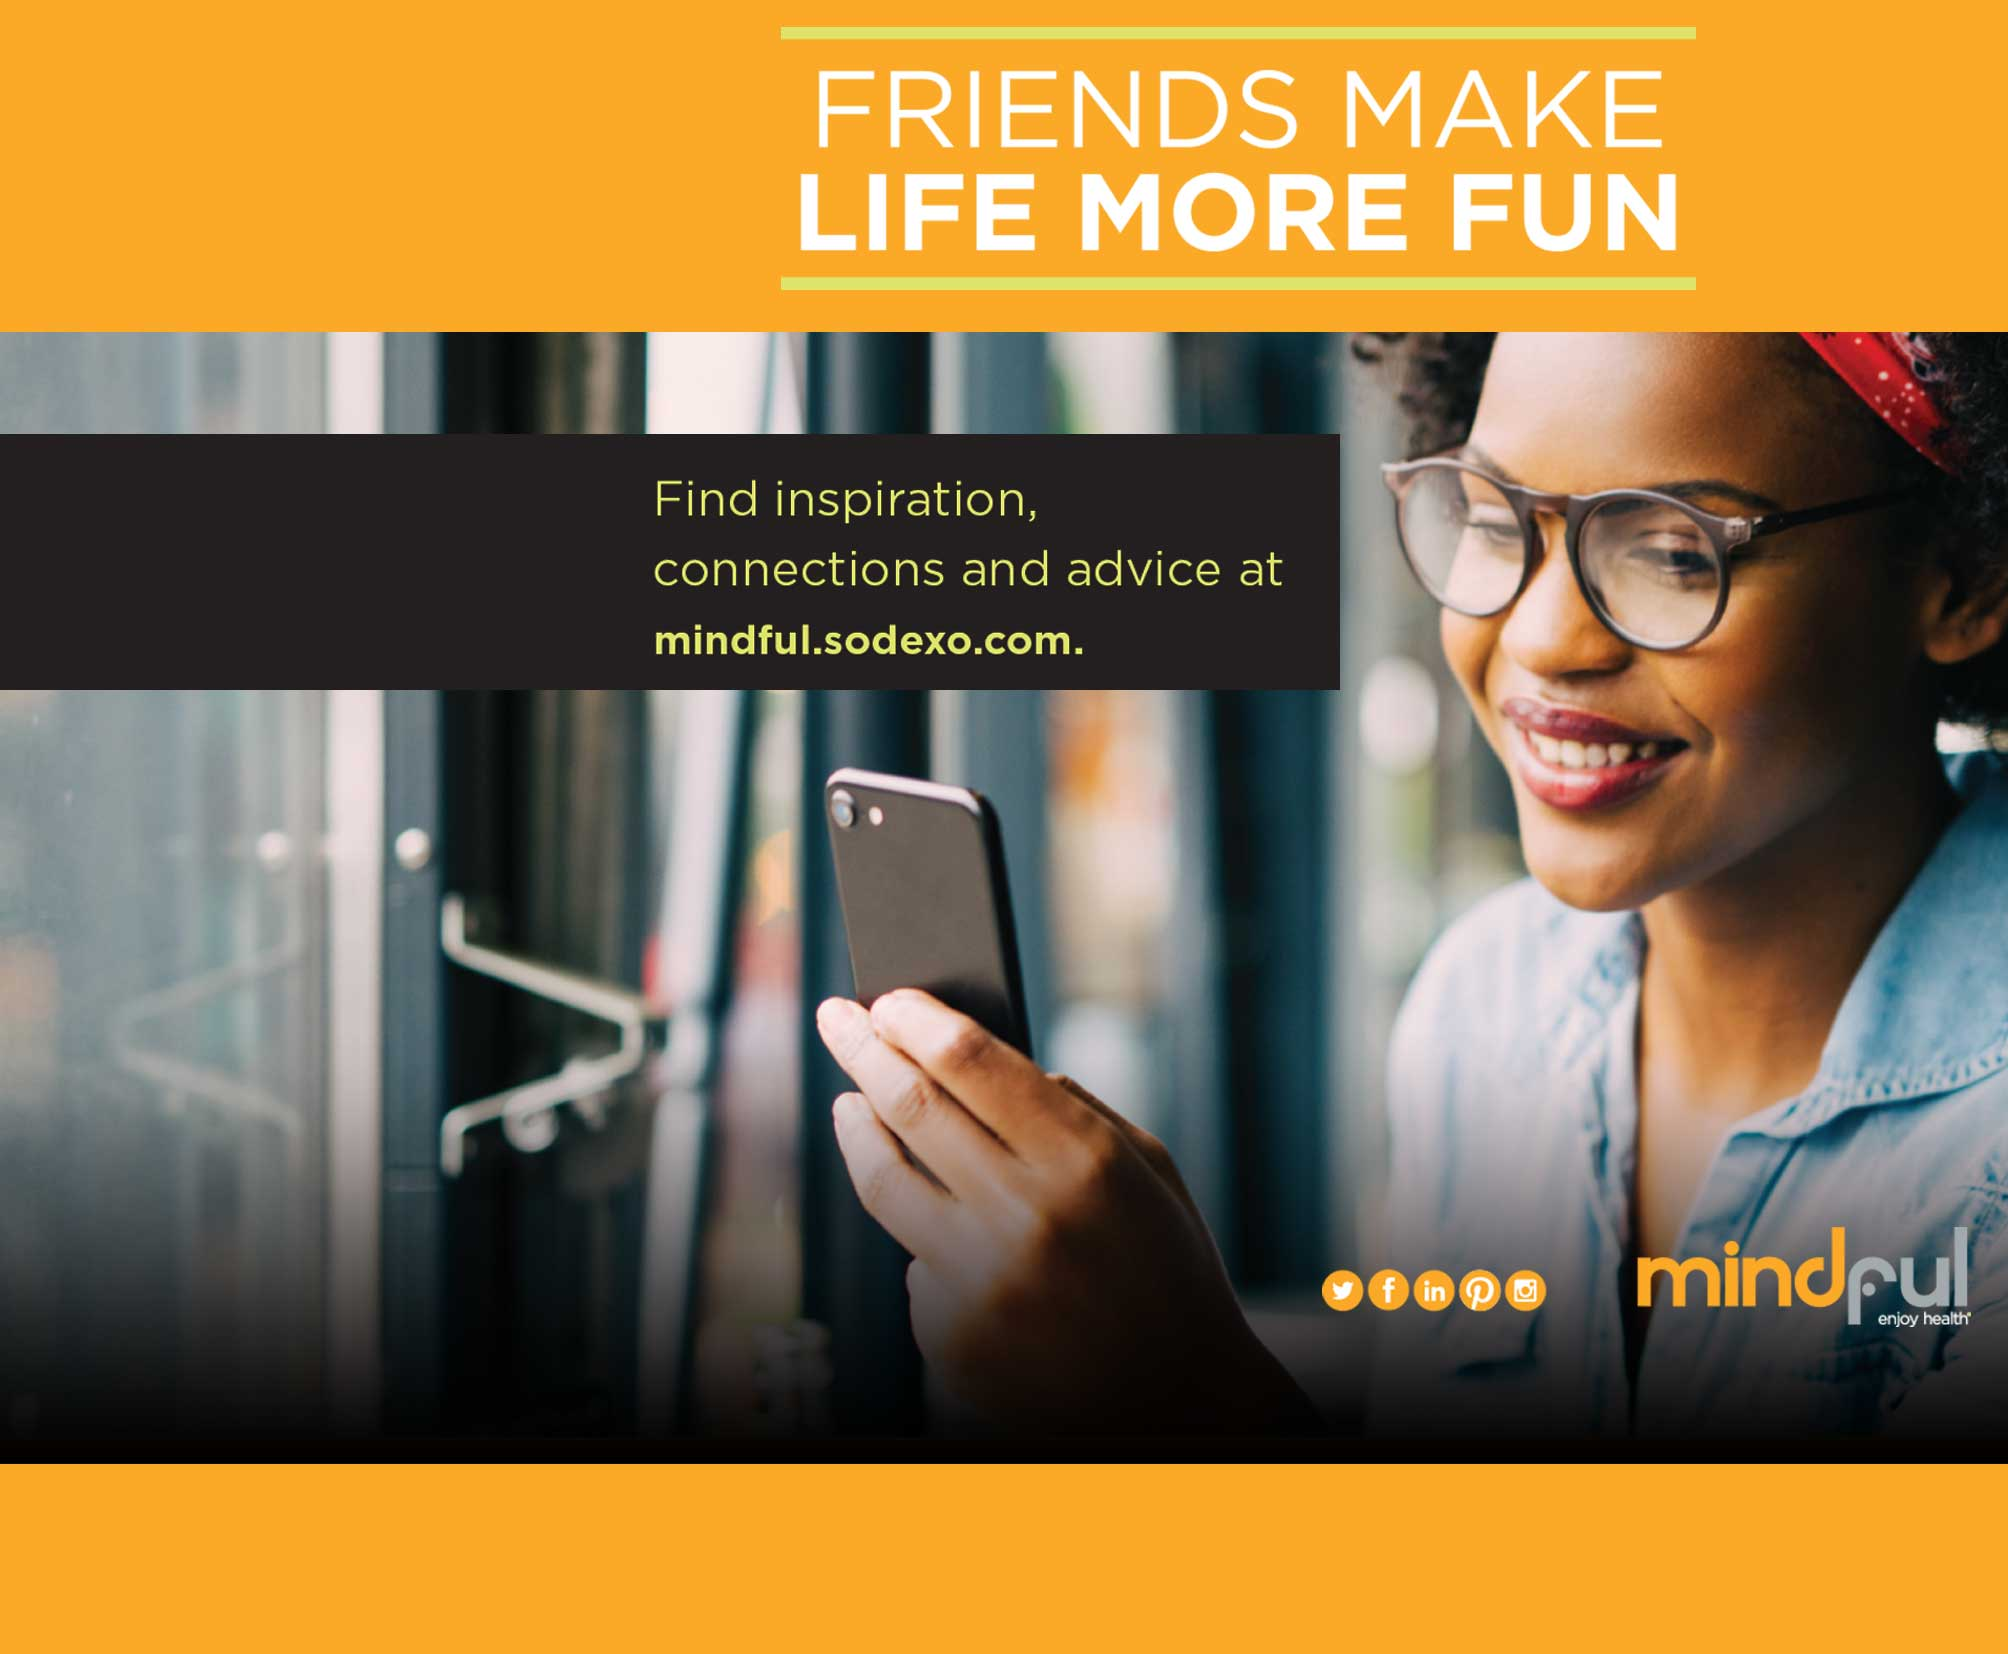 Friends make life more fun. find inspiration, connections and advice at mindful.sodexo.com